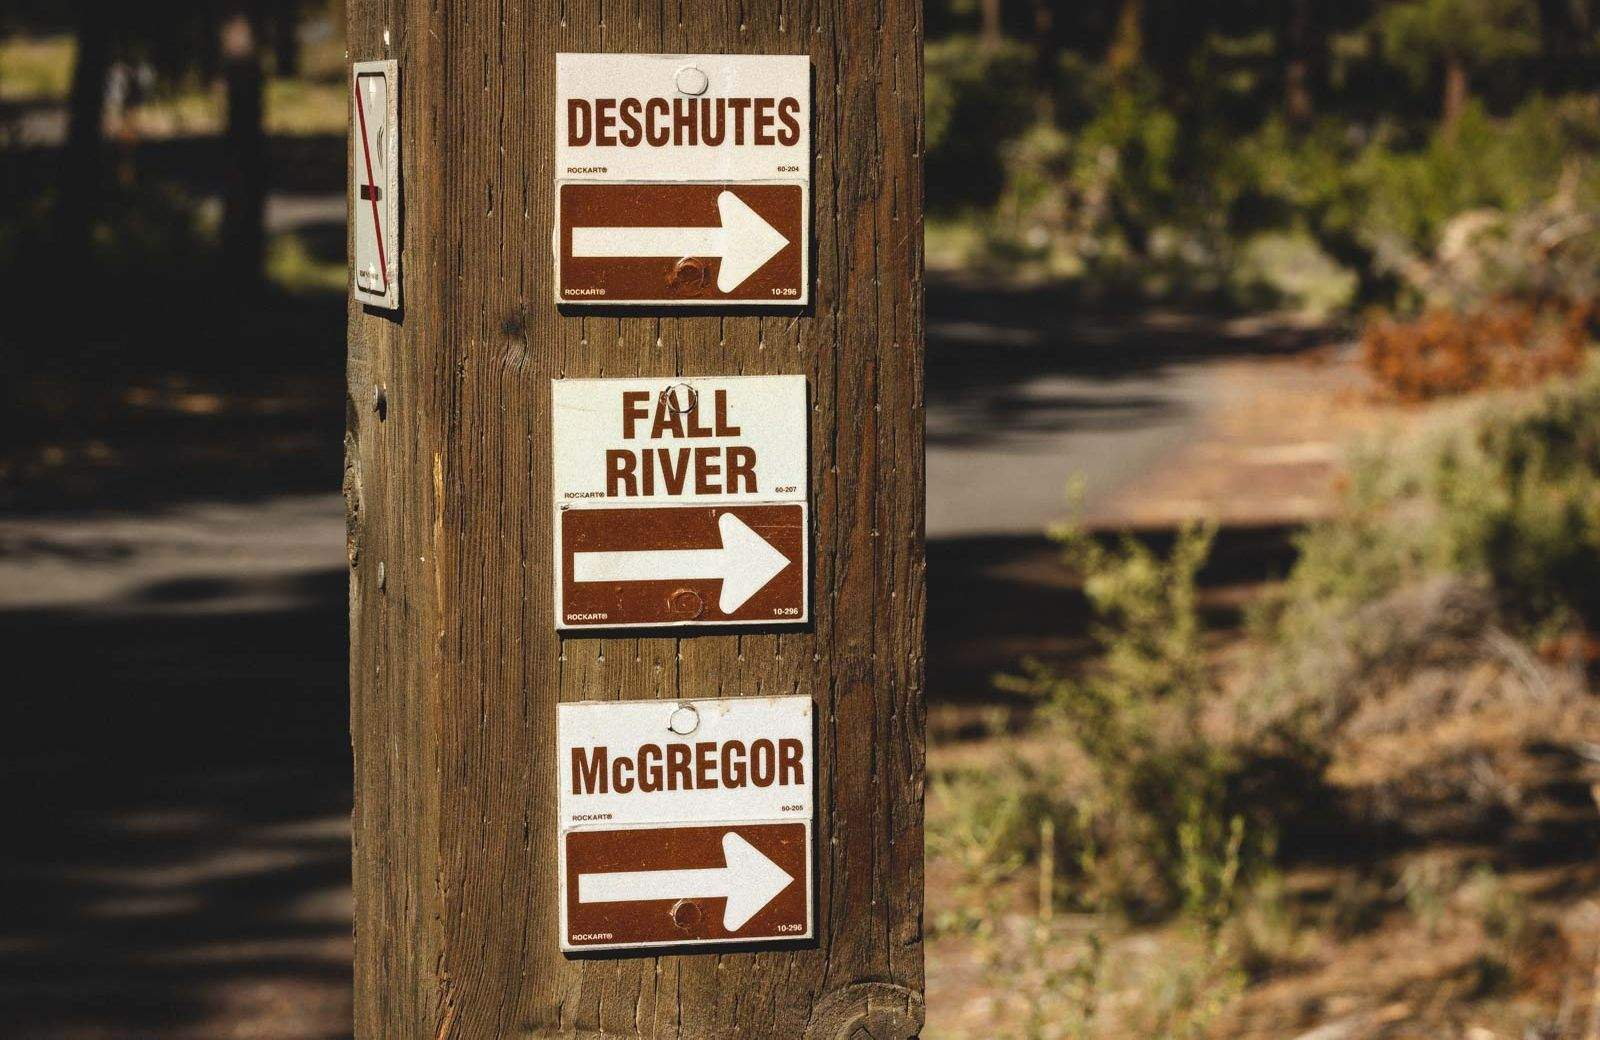 The hiking trails at LaPine State Park are well marked.